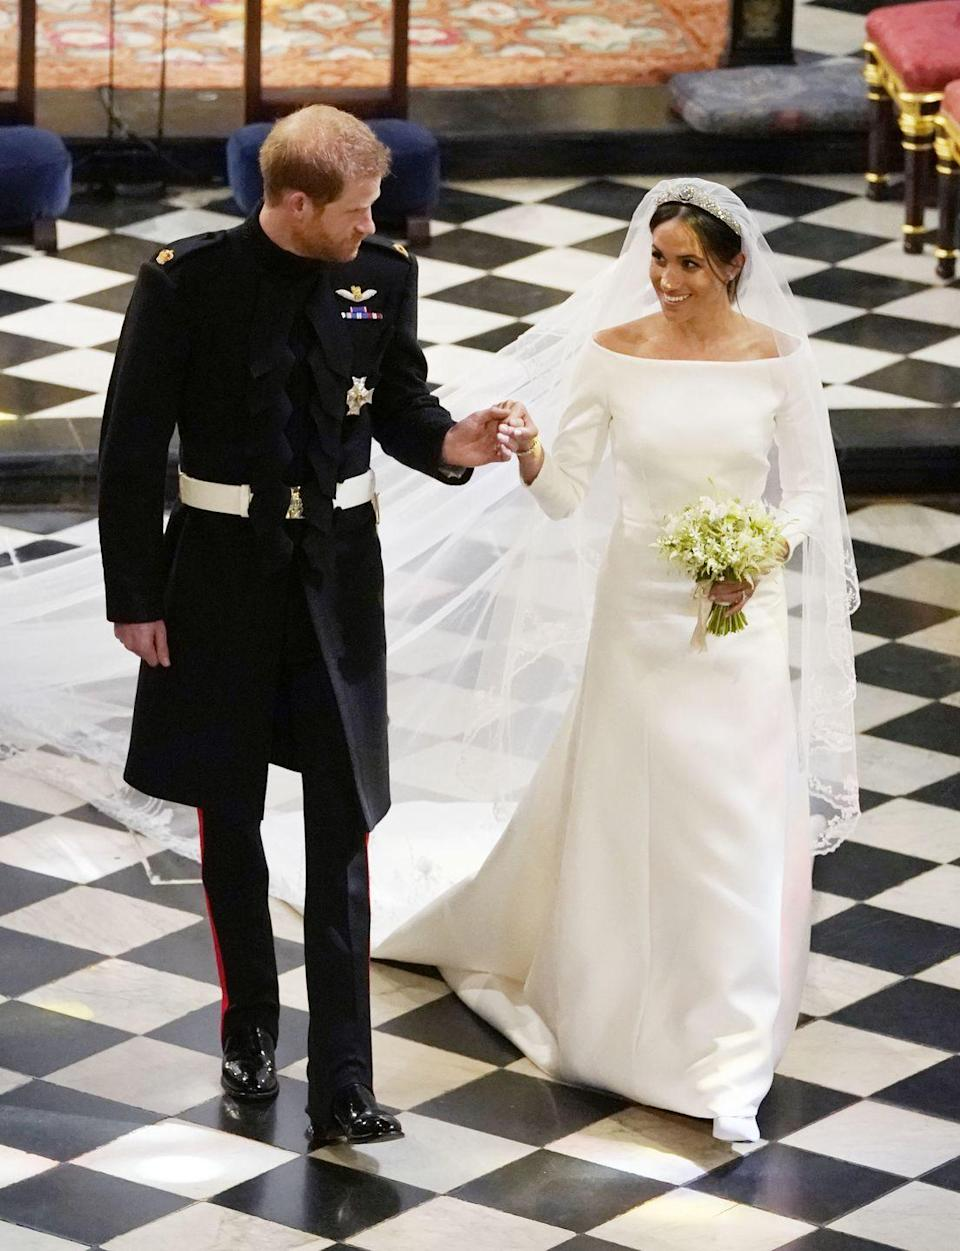 "<p>Meghan Markle's veil was <a href=""https://www.rd.com/culture/meghan-markle-wedding-dress-details/"" rel=""nofollow noopener"" target=""_blank"" data-ylk=""slk:16 feet long"" class=""link rapid-noclick-resp"">16 feet long</a> and featured flowers of the 53 nations of the Commonwealth. She chose a British designer, Clare Waight Keller of Givenchy, to design her dress for her big day with Prince Harry.</p>"